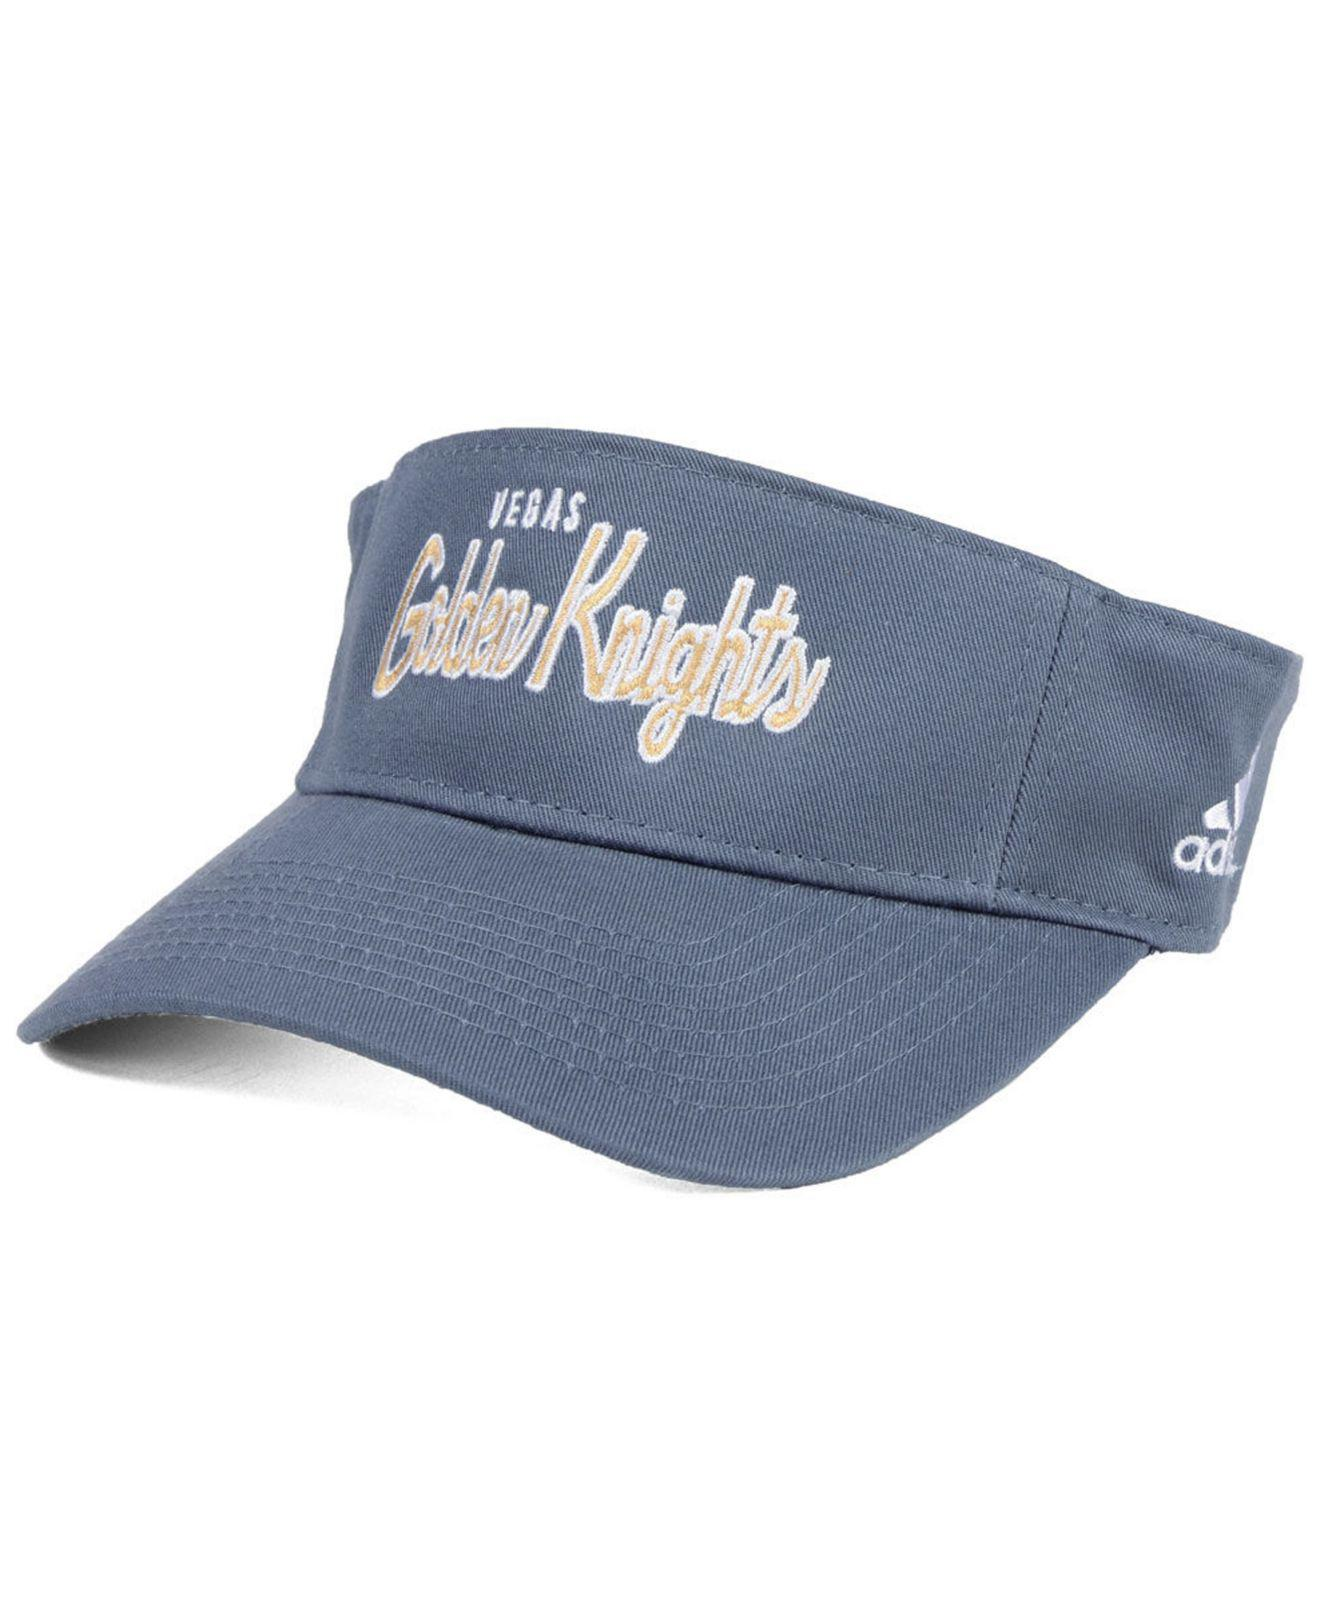 7dc00088469 Lyst - adidas Vegas Golden Knights Chase Visor in Gray